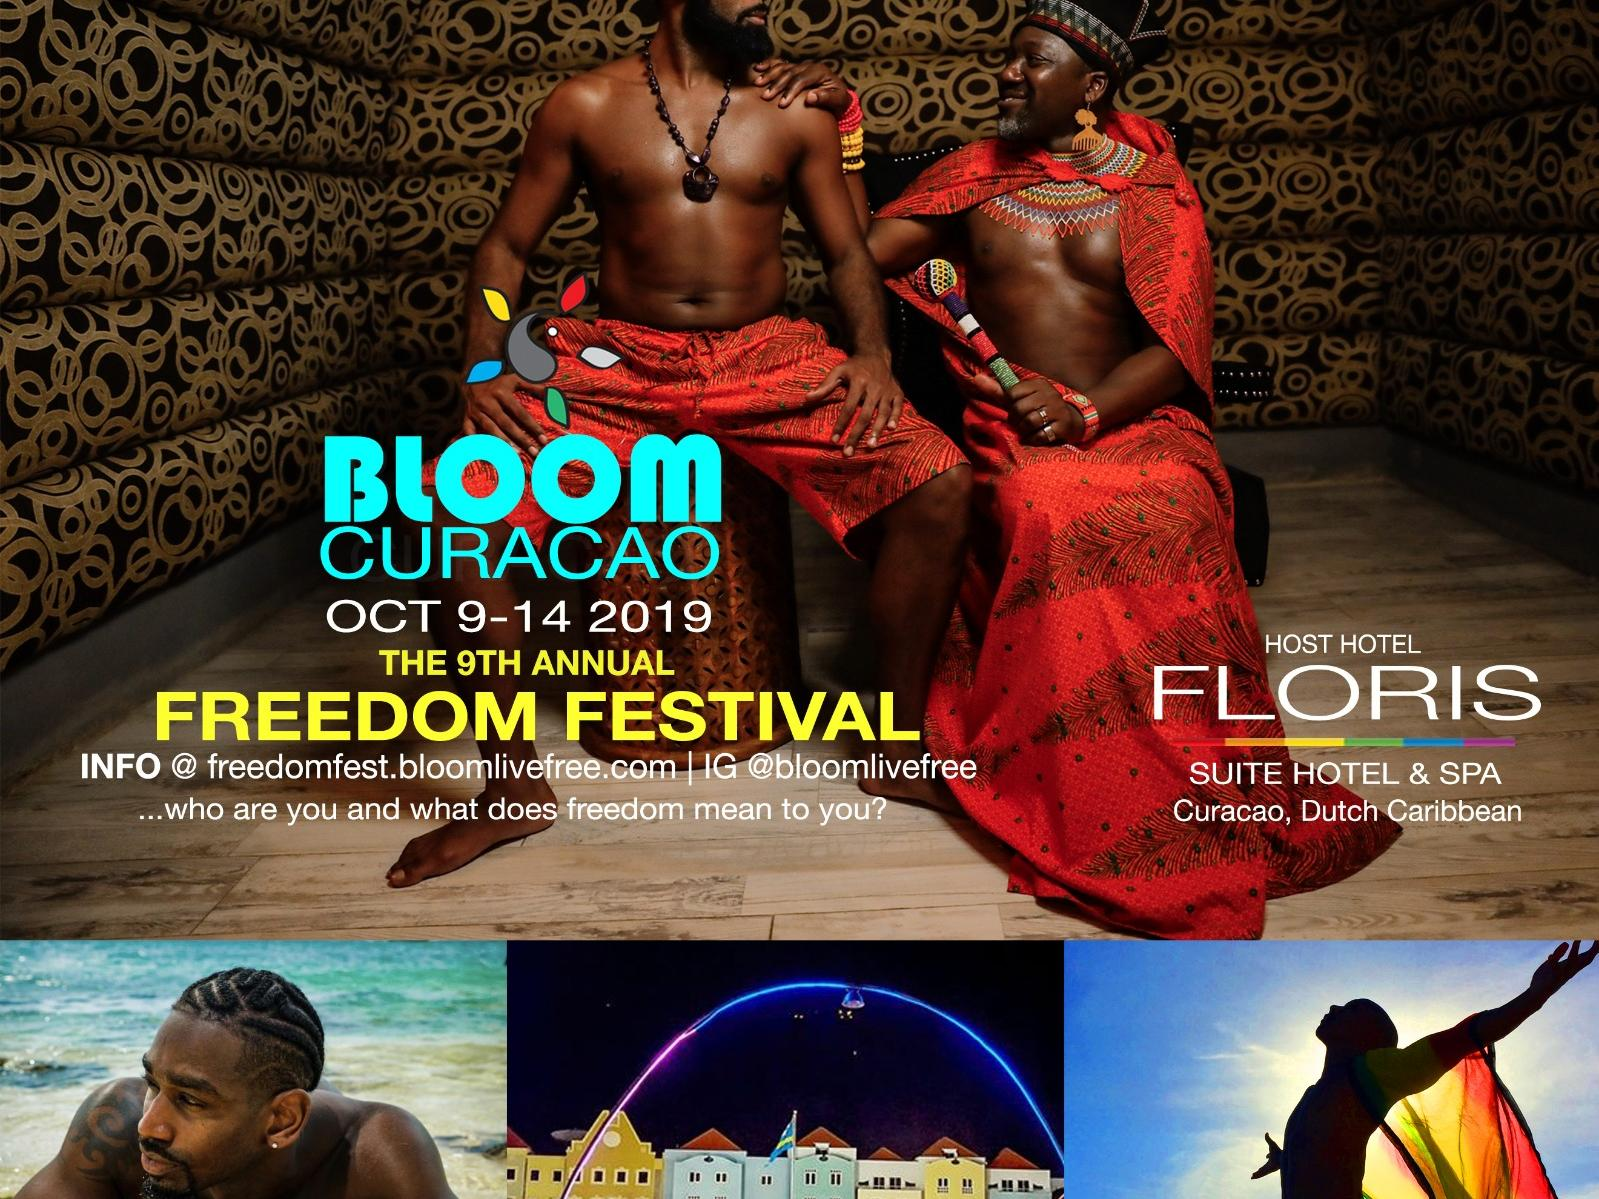 The Bloom Freedom Festival